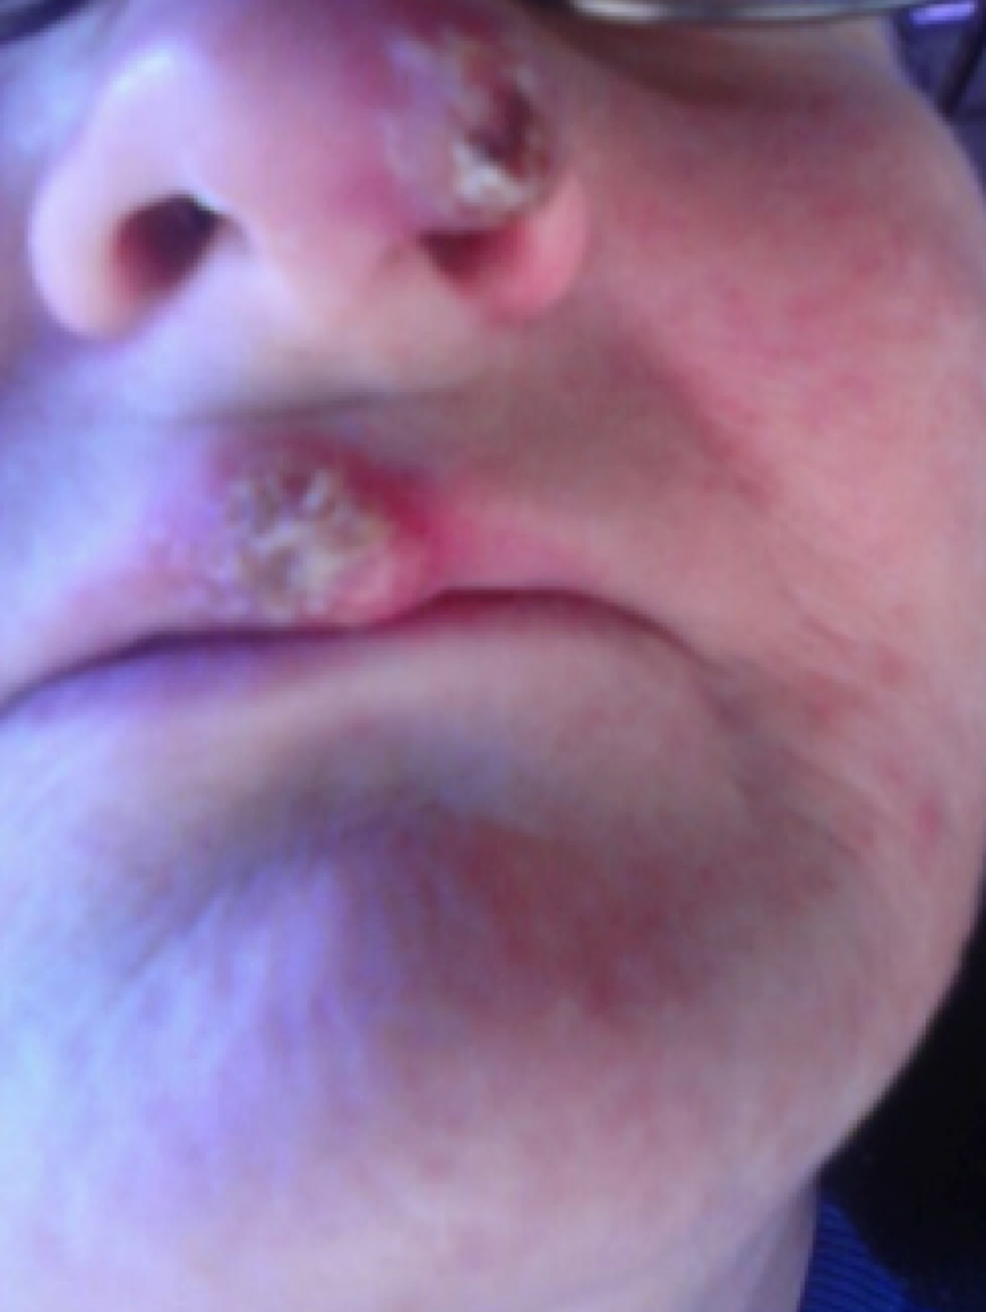 Blastomycosis-lesion-on-left-intranasal-passageway-and-middle-of-upper-lip,-observed-during-physical-examination